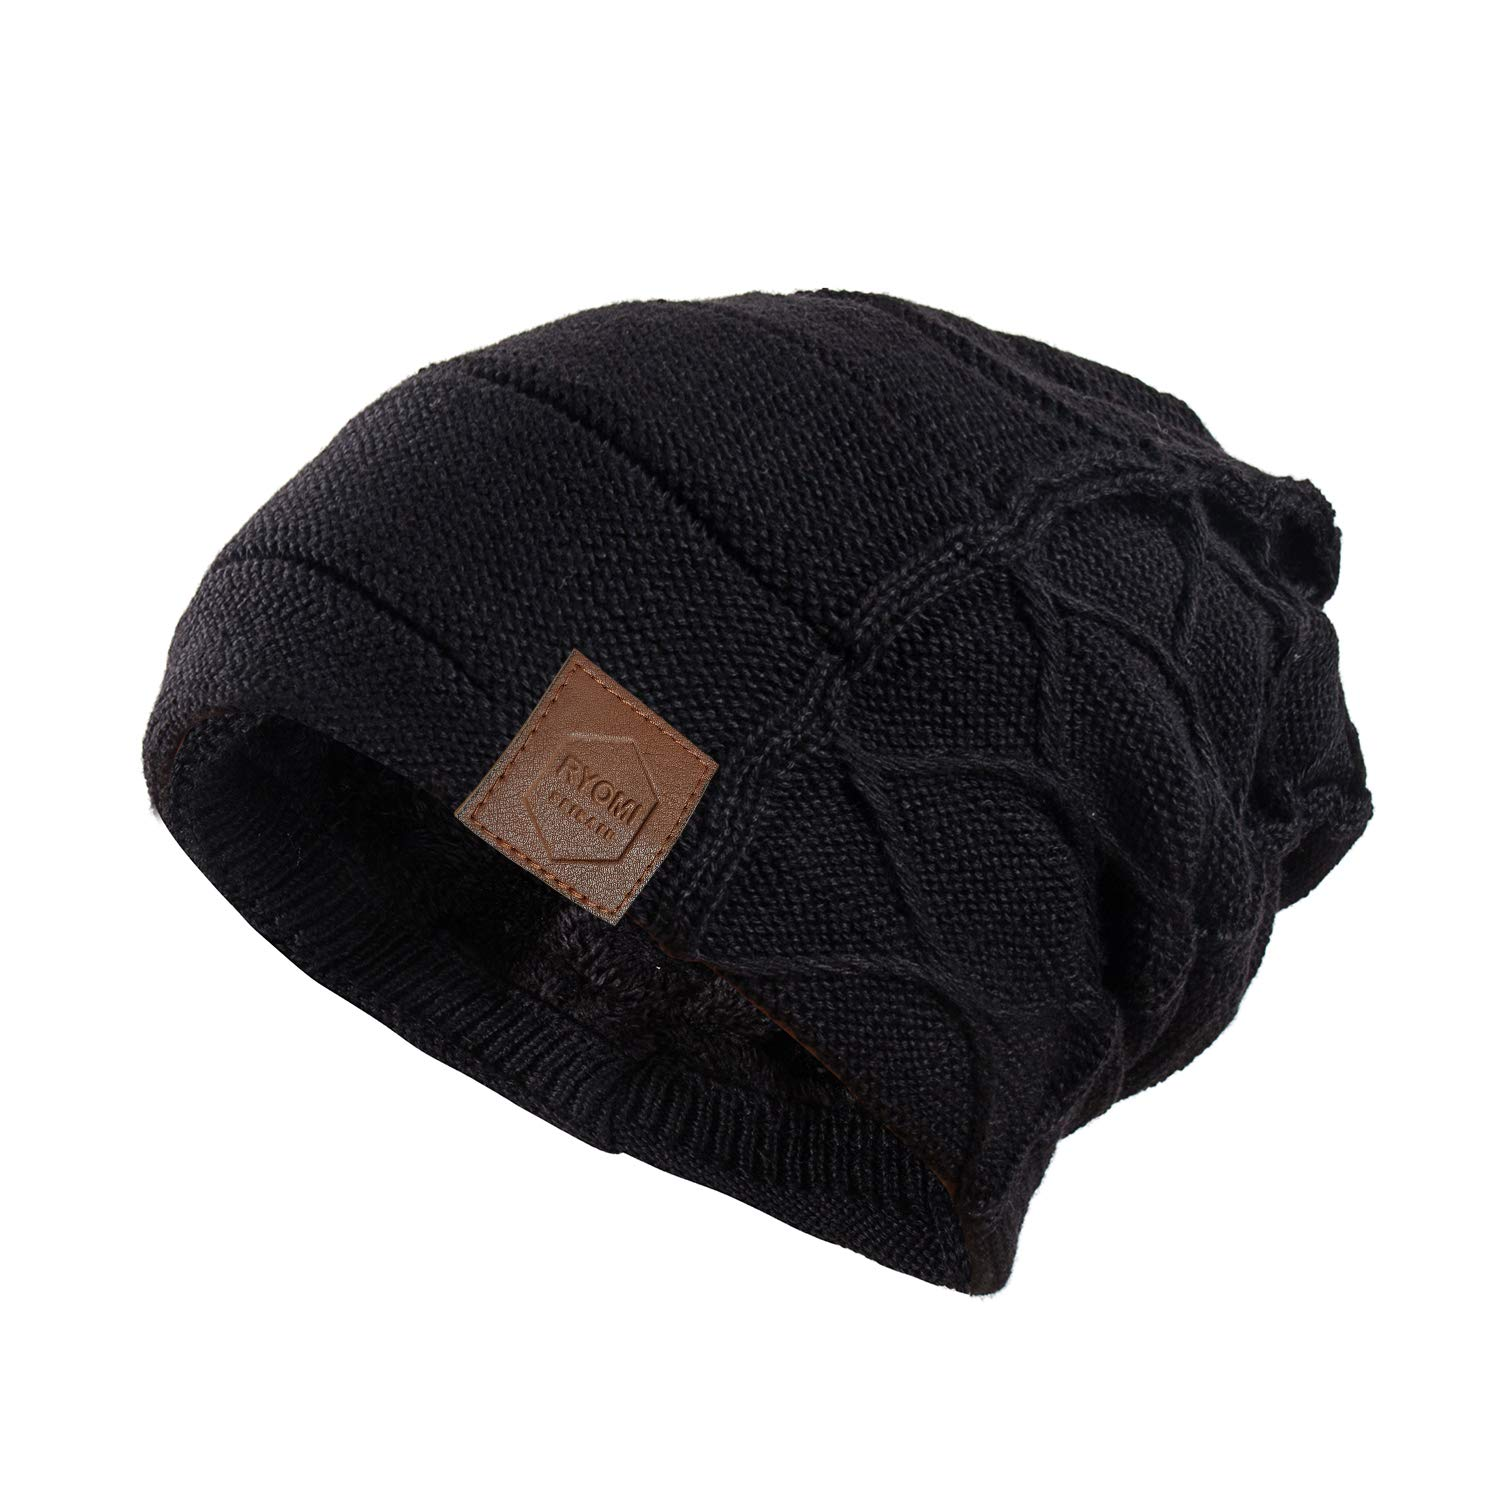 cf4e33e139e58 RYOMI SEIKATU Beanie Hat for Men and Women Fleece Lined Winter Warm Hats  Knit Slouchy Thick Skull Cap Black at Amazon Men s Clothing store